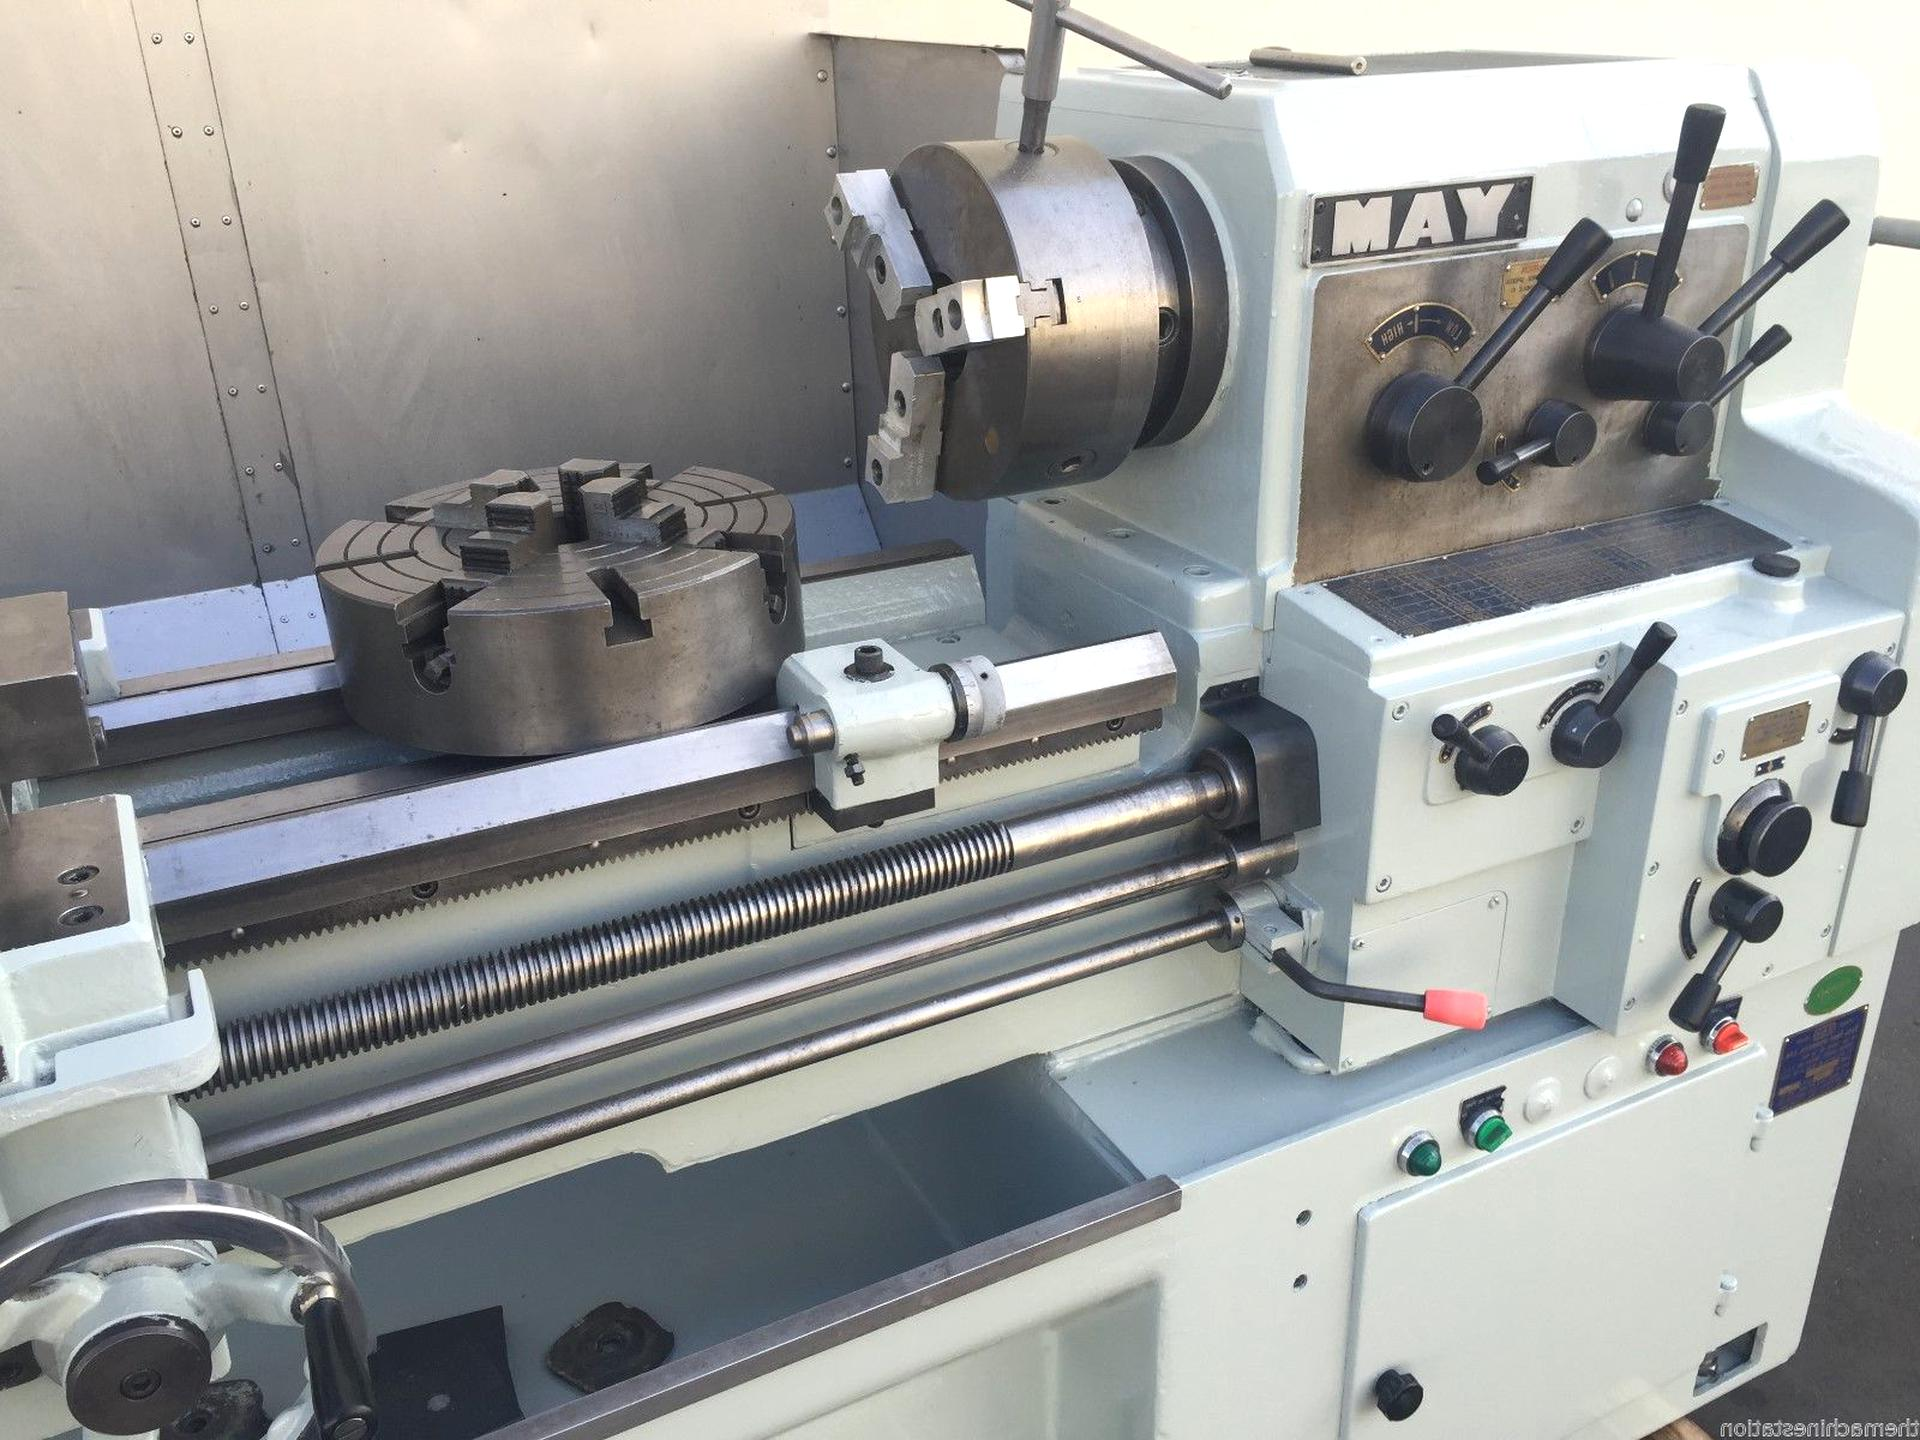 yam lathe for sale